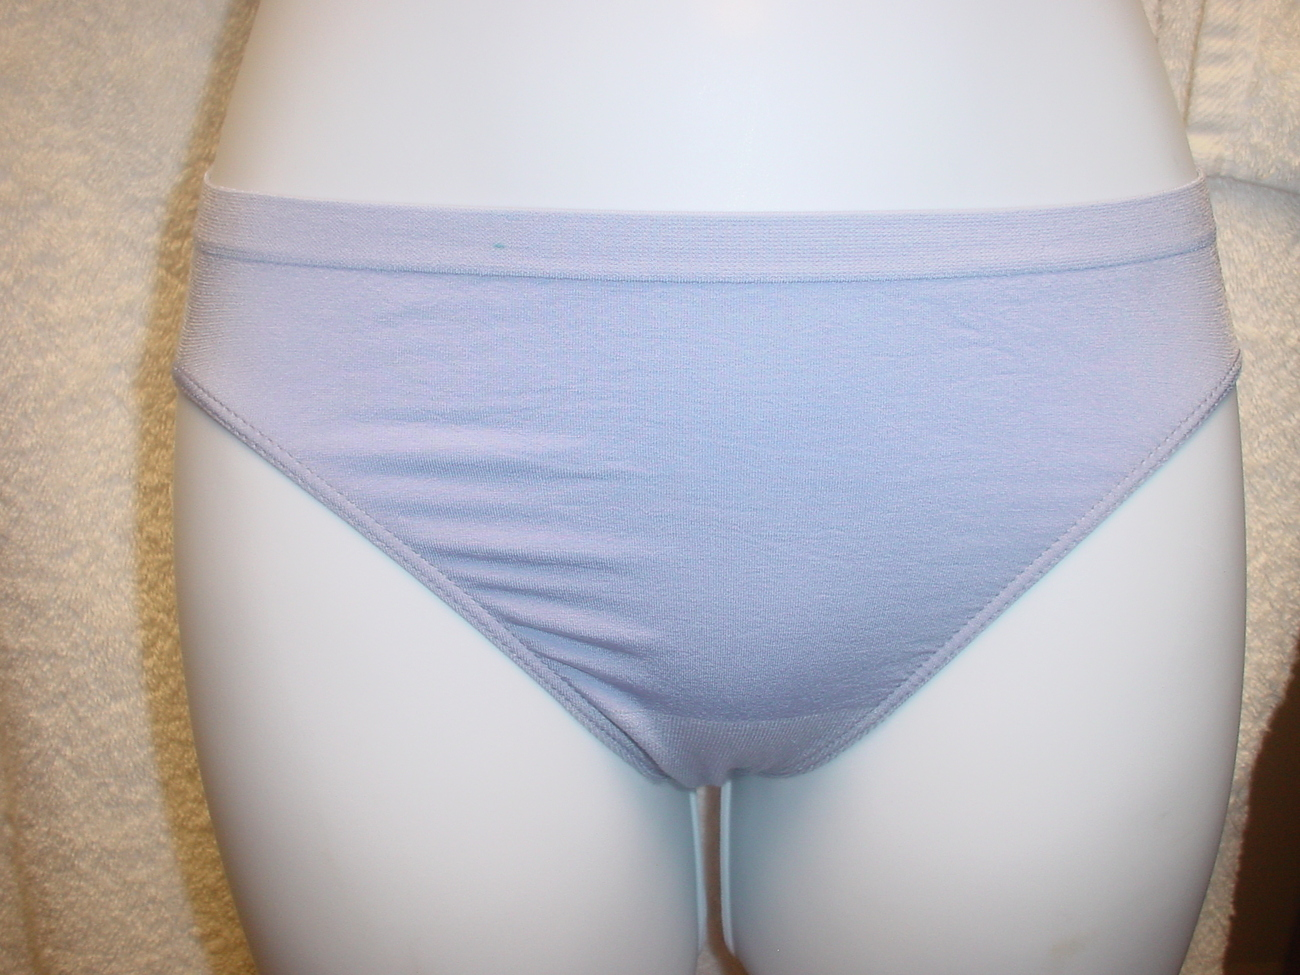 Jockey Seamless Panty 5/Small Violet SP-Slightly Imperfect NWOT